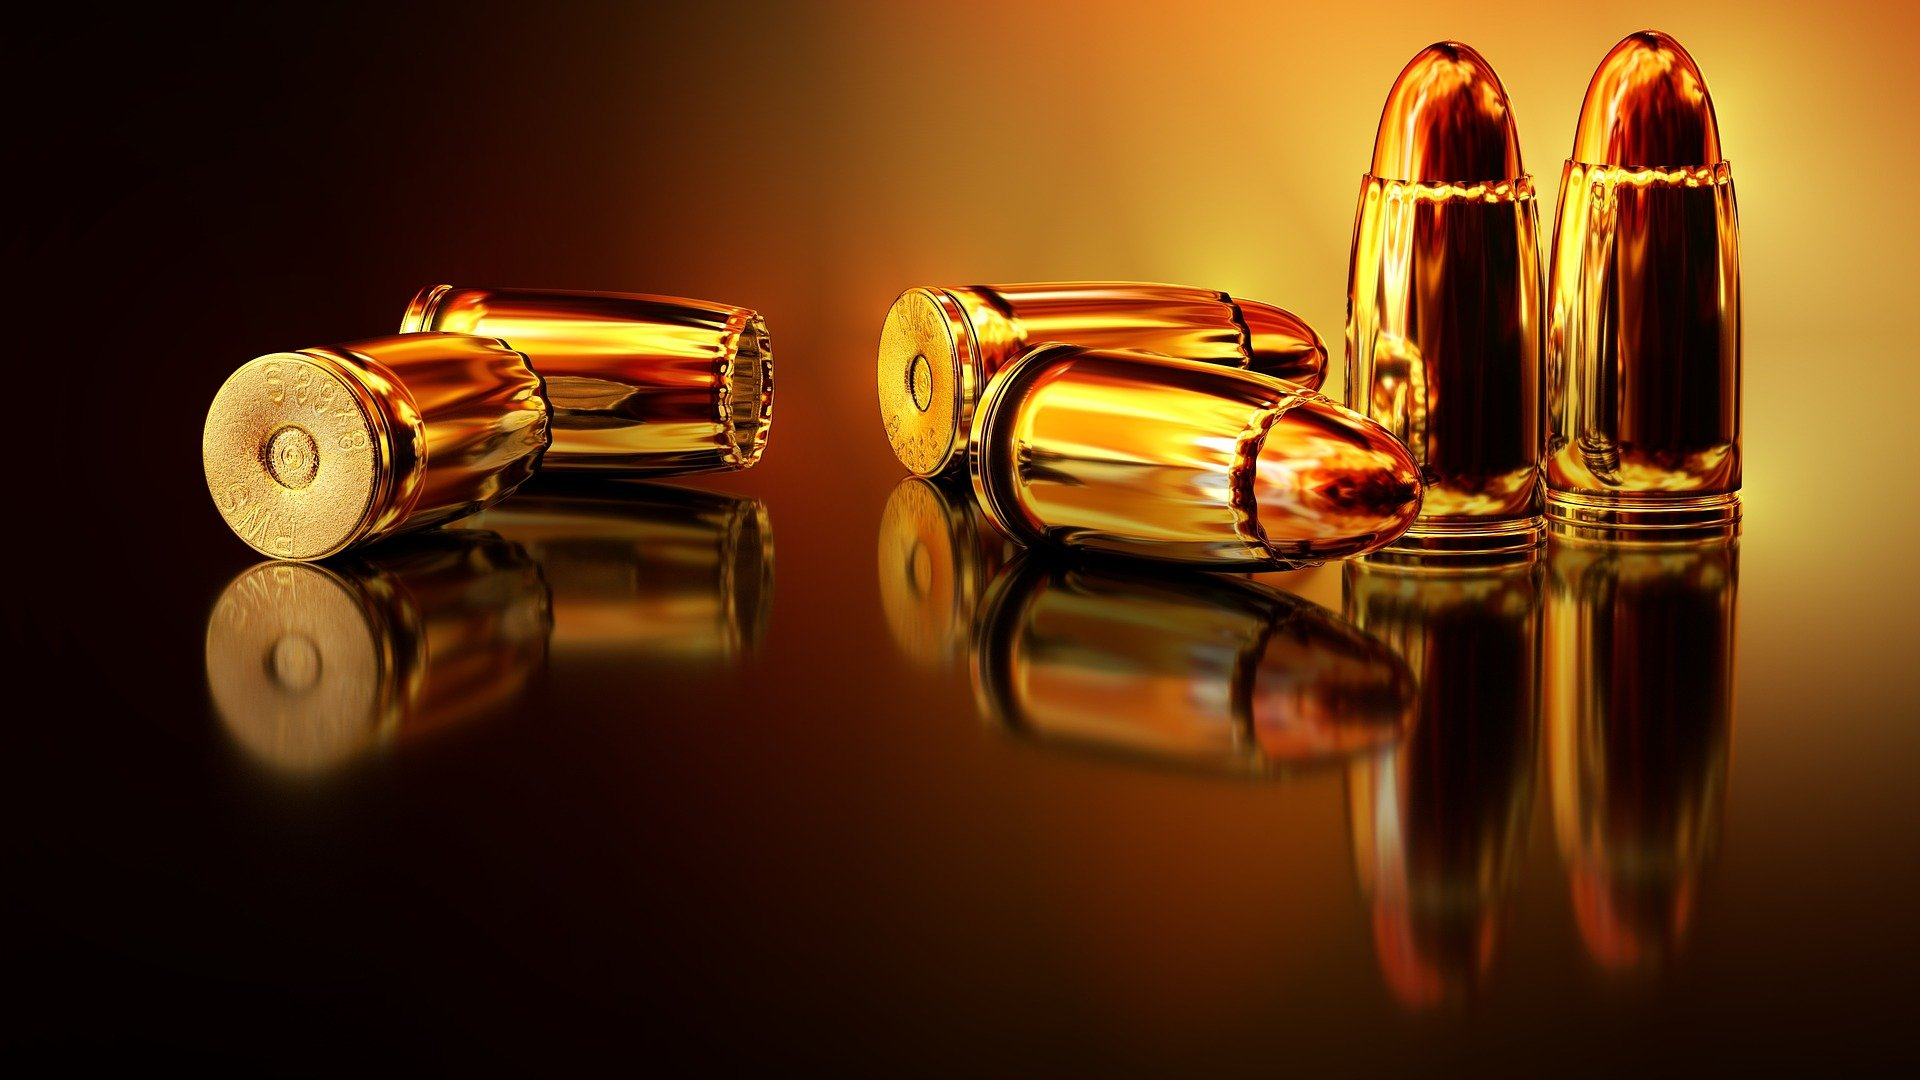 Pictured - A photo of bullet shells   Source: Pixabay